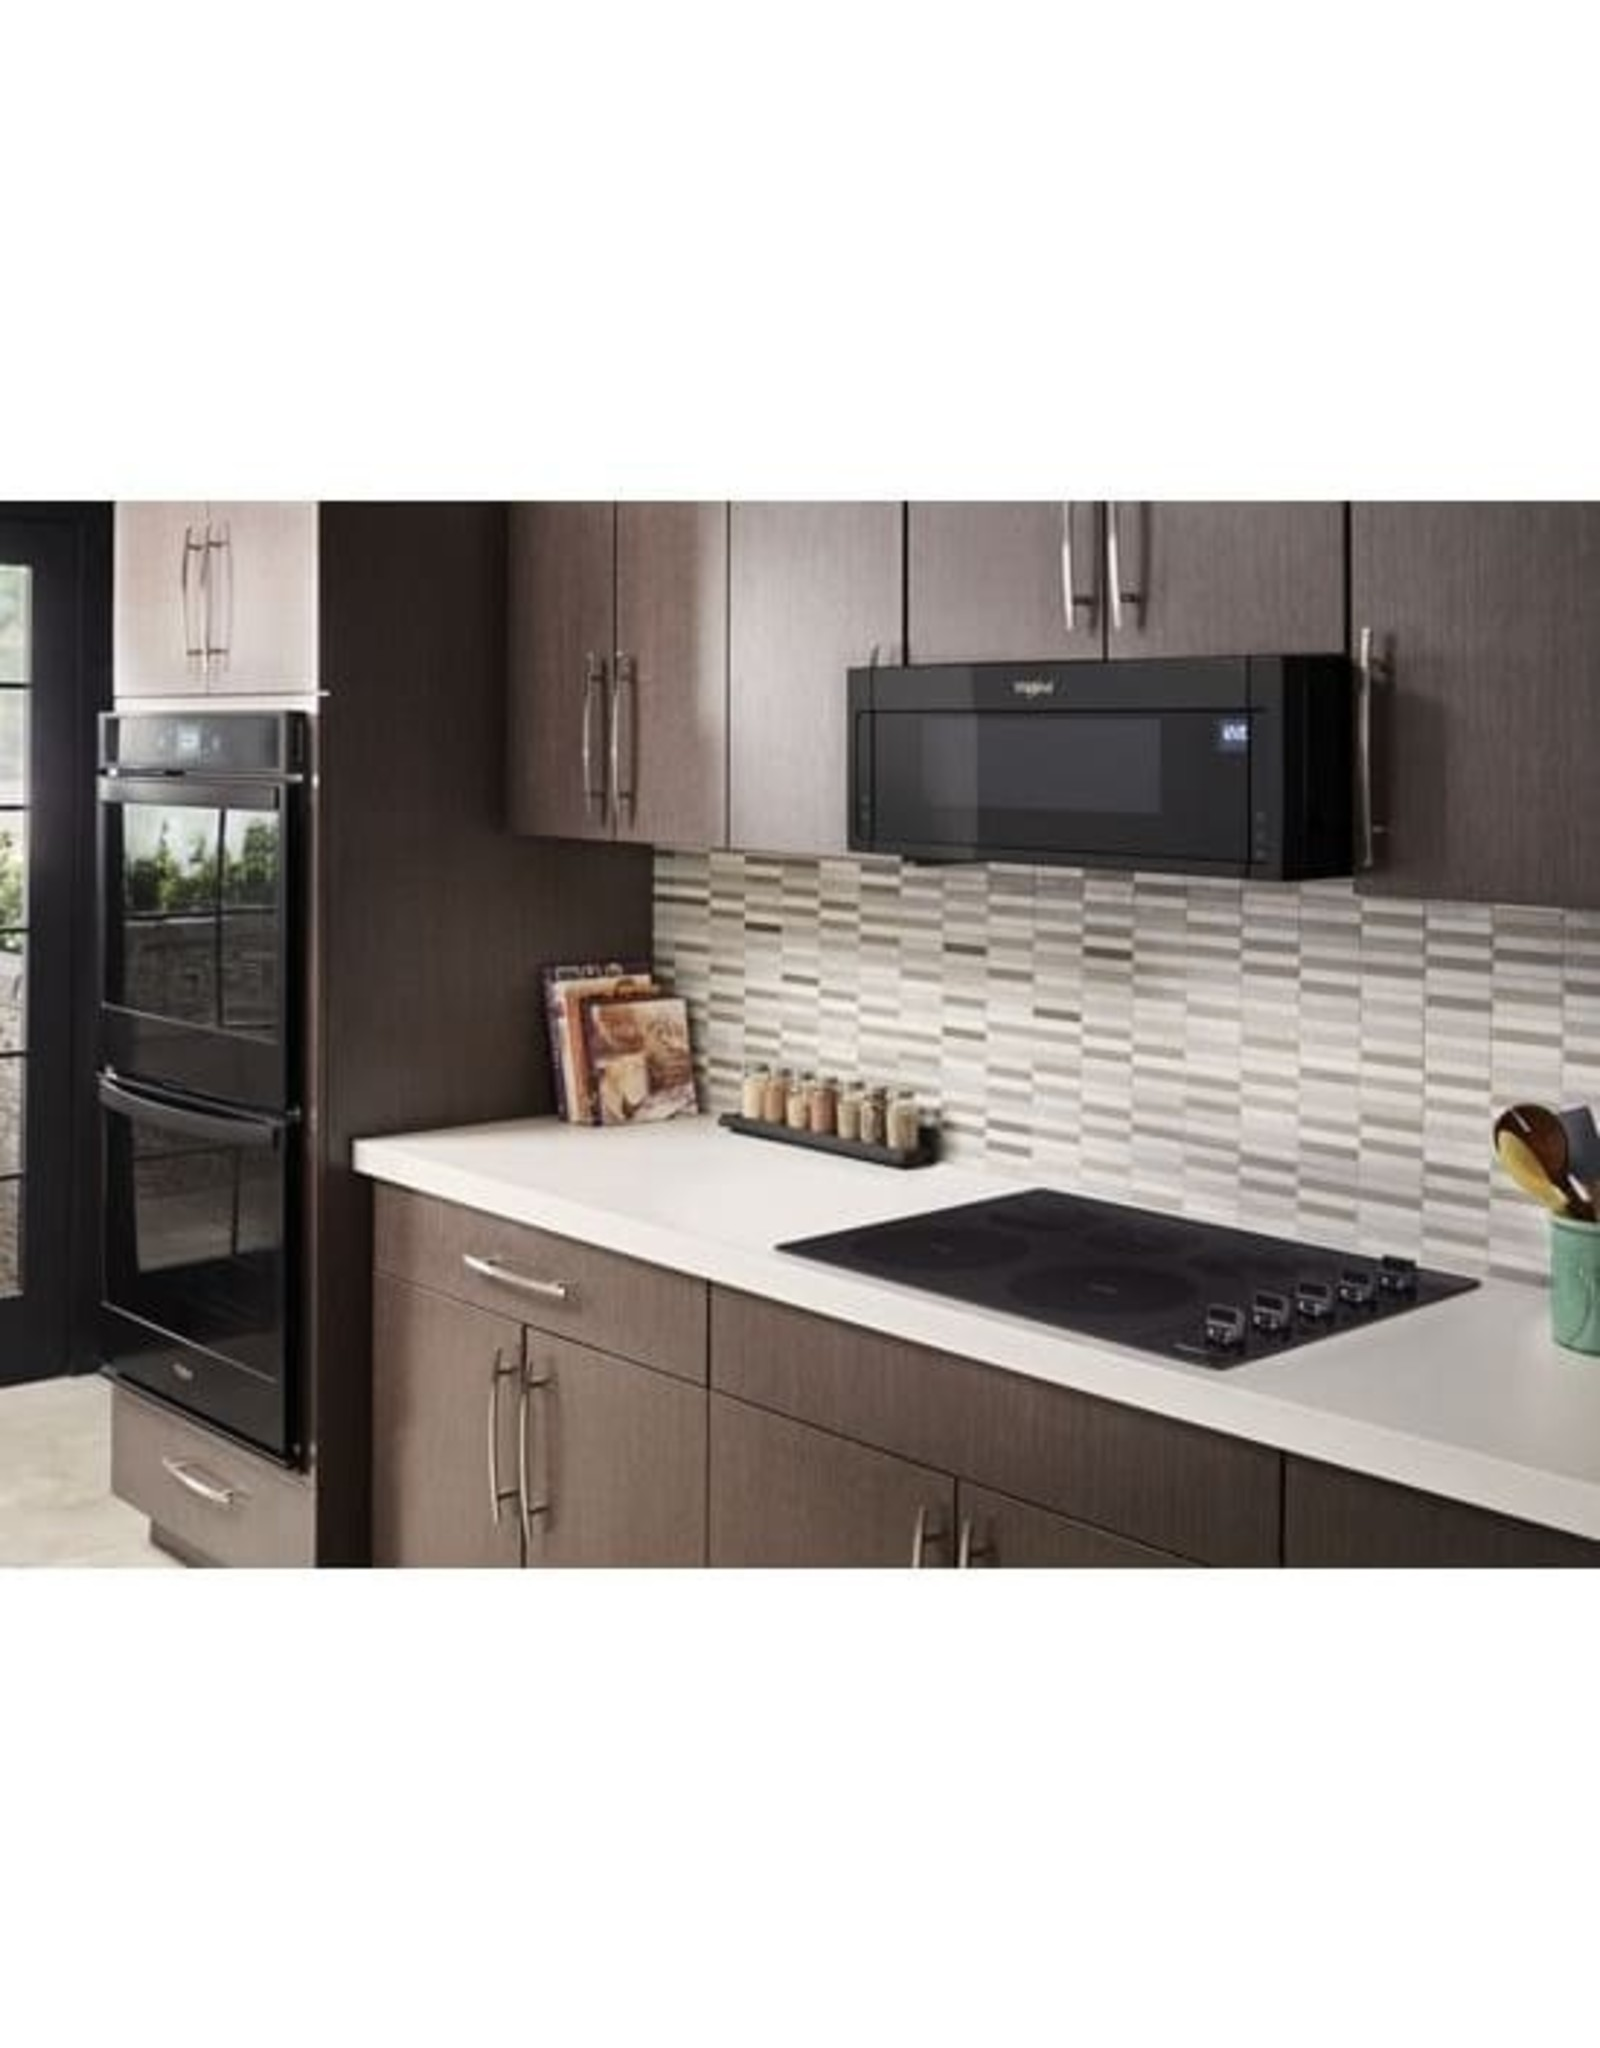 WHIRLPOOL WCE77US0HB 30 in. Radiant Electric Ceramic Glass Cooktop in Black with 5 Elements including 2 Dual Radiant Elements